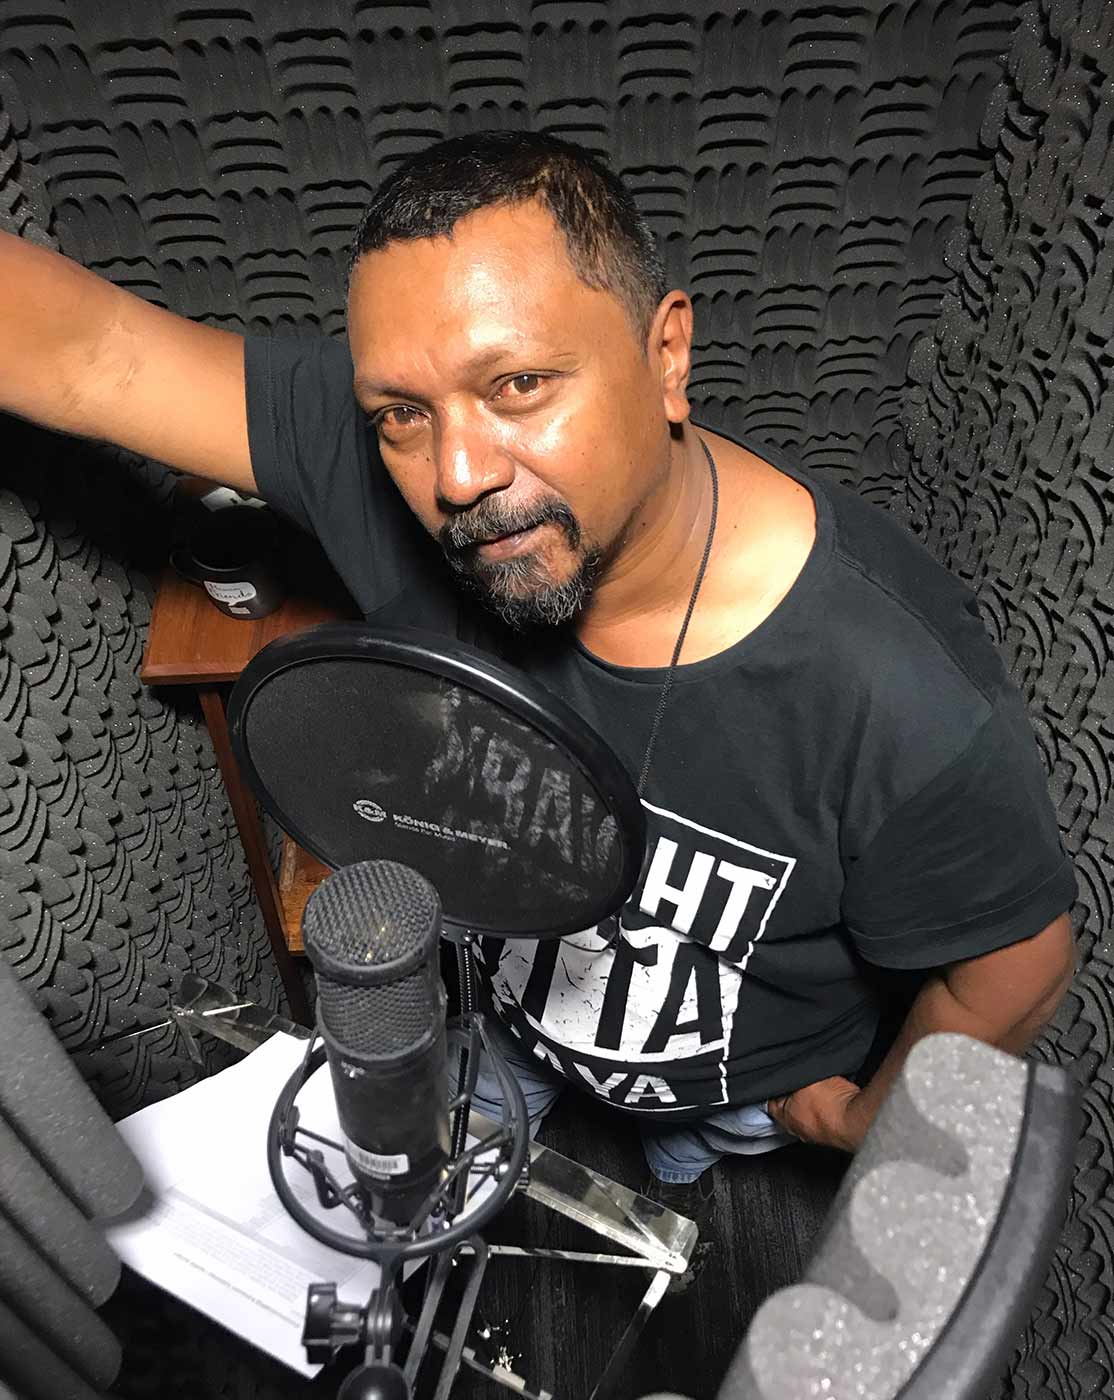 Colour photograph of a man in a soundproof booth of a recording studio. He is speaking into a microphone. - click to view larger image